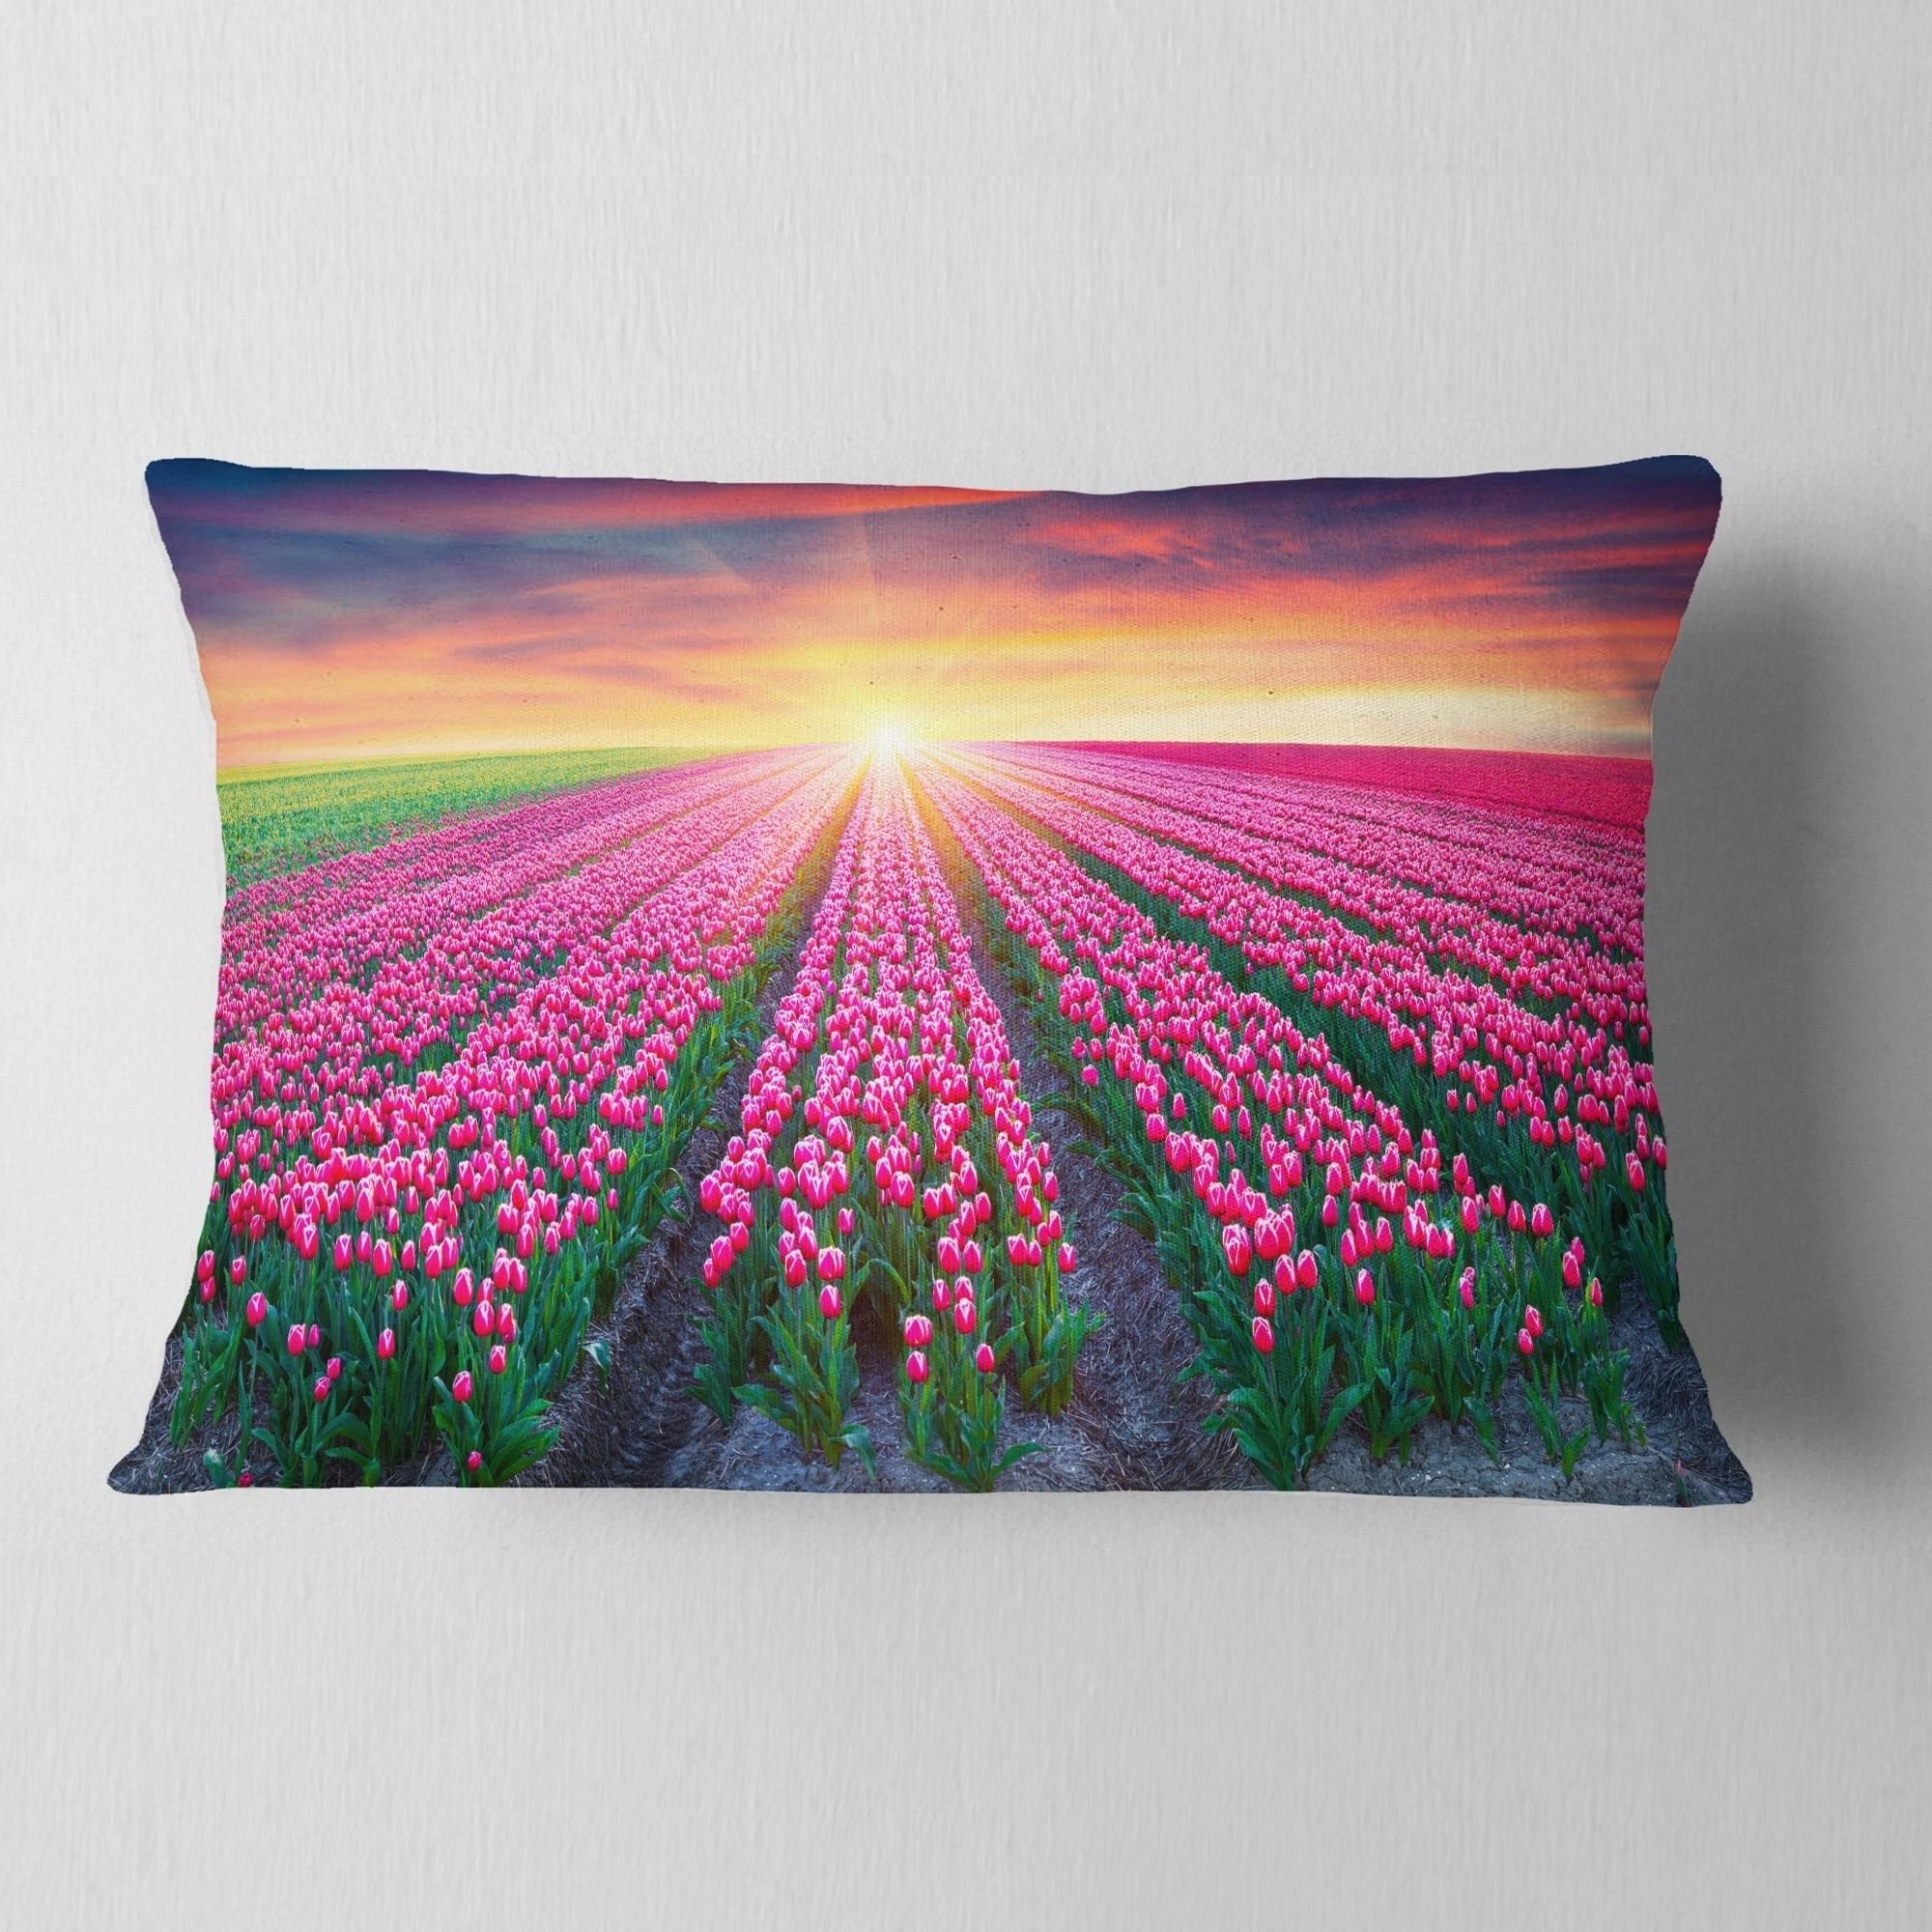 Designart Blooming Tulips At Sunrise Photography Throw Pillow Overstock 20948214